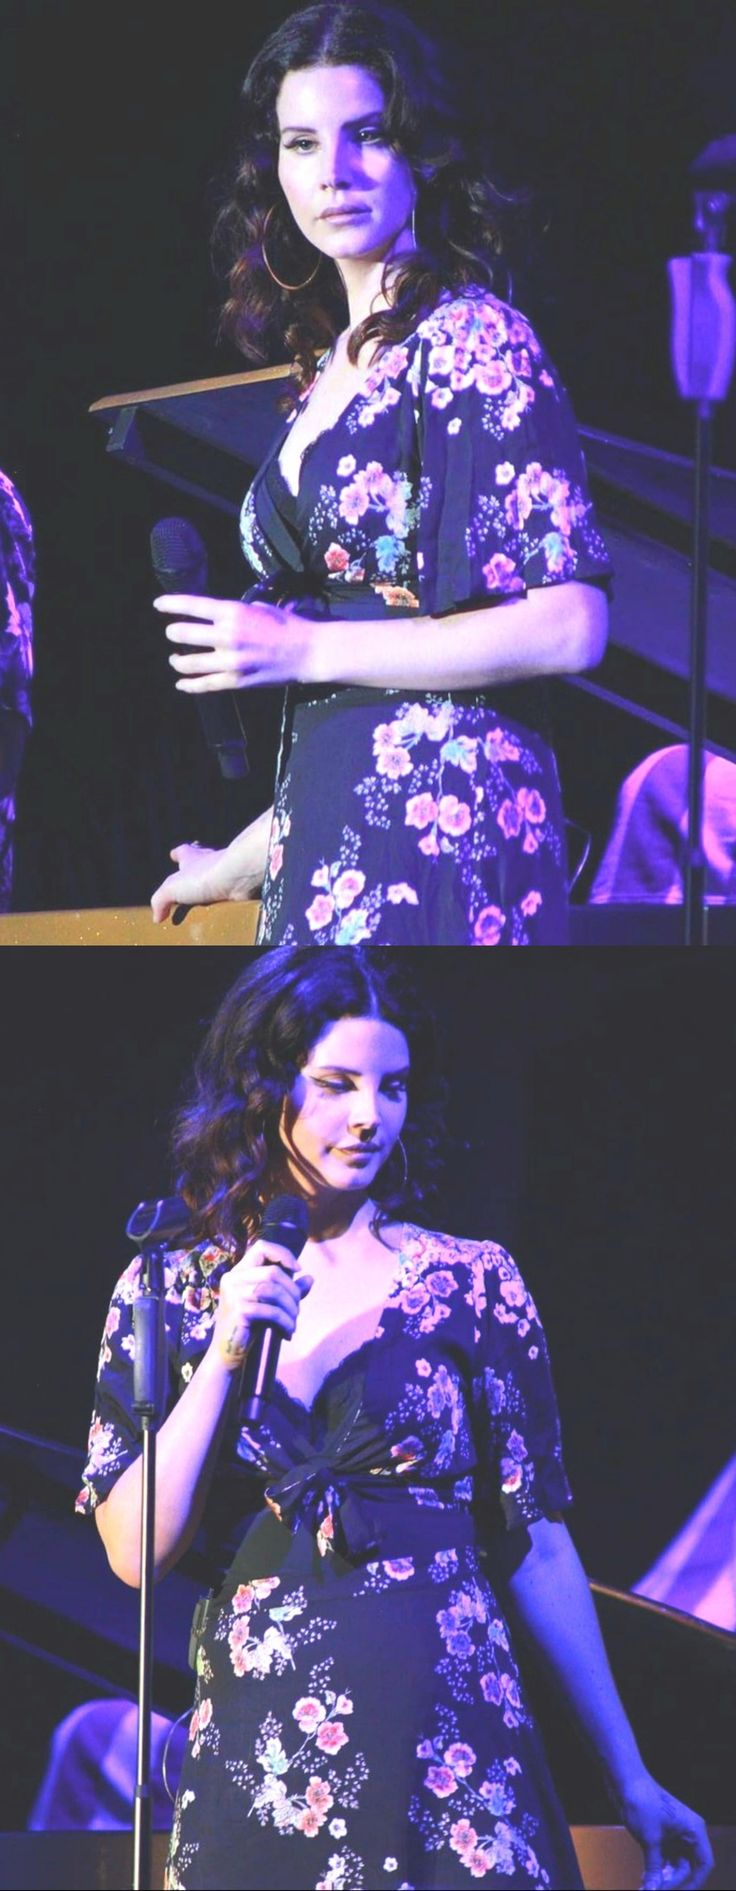 Feb.28, 2018: Lana Del Rey performing in Honolulu, Hawaii #LDR #LA_to_the_Moon_Tour